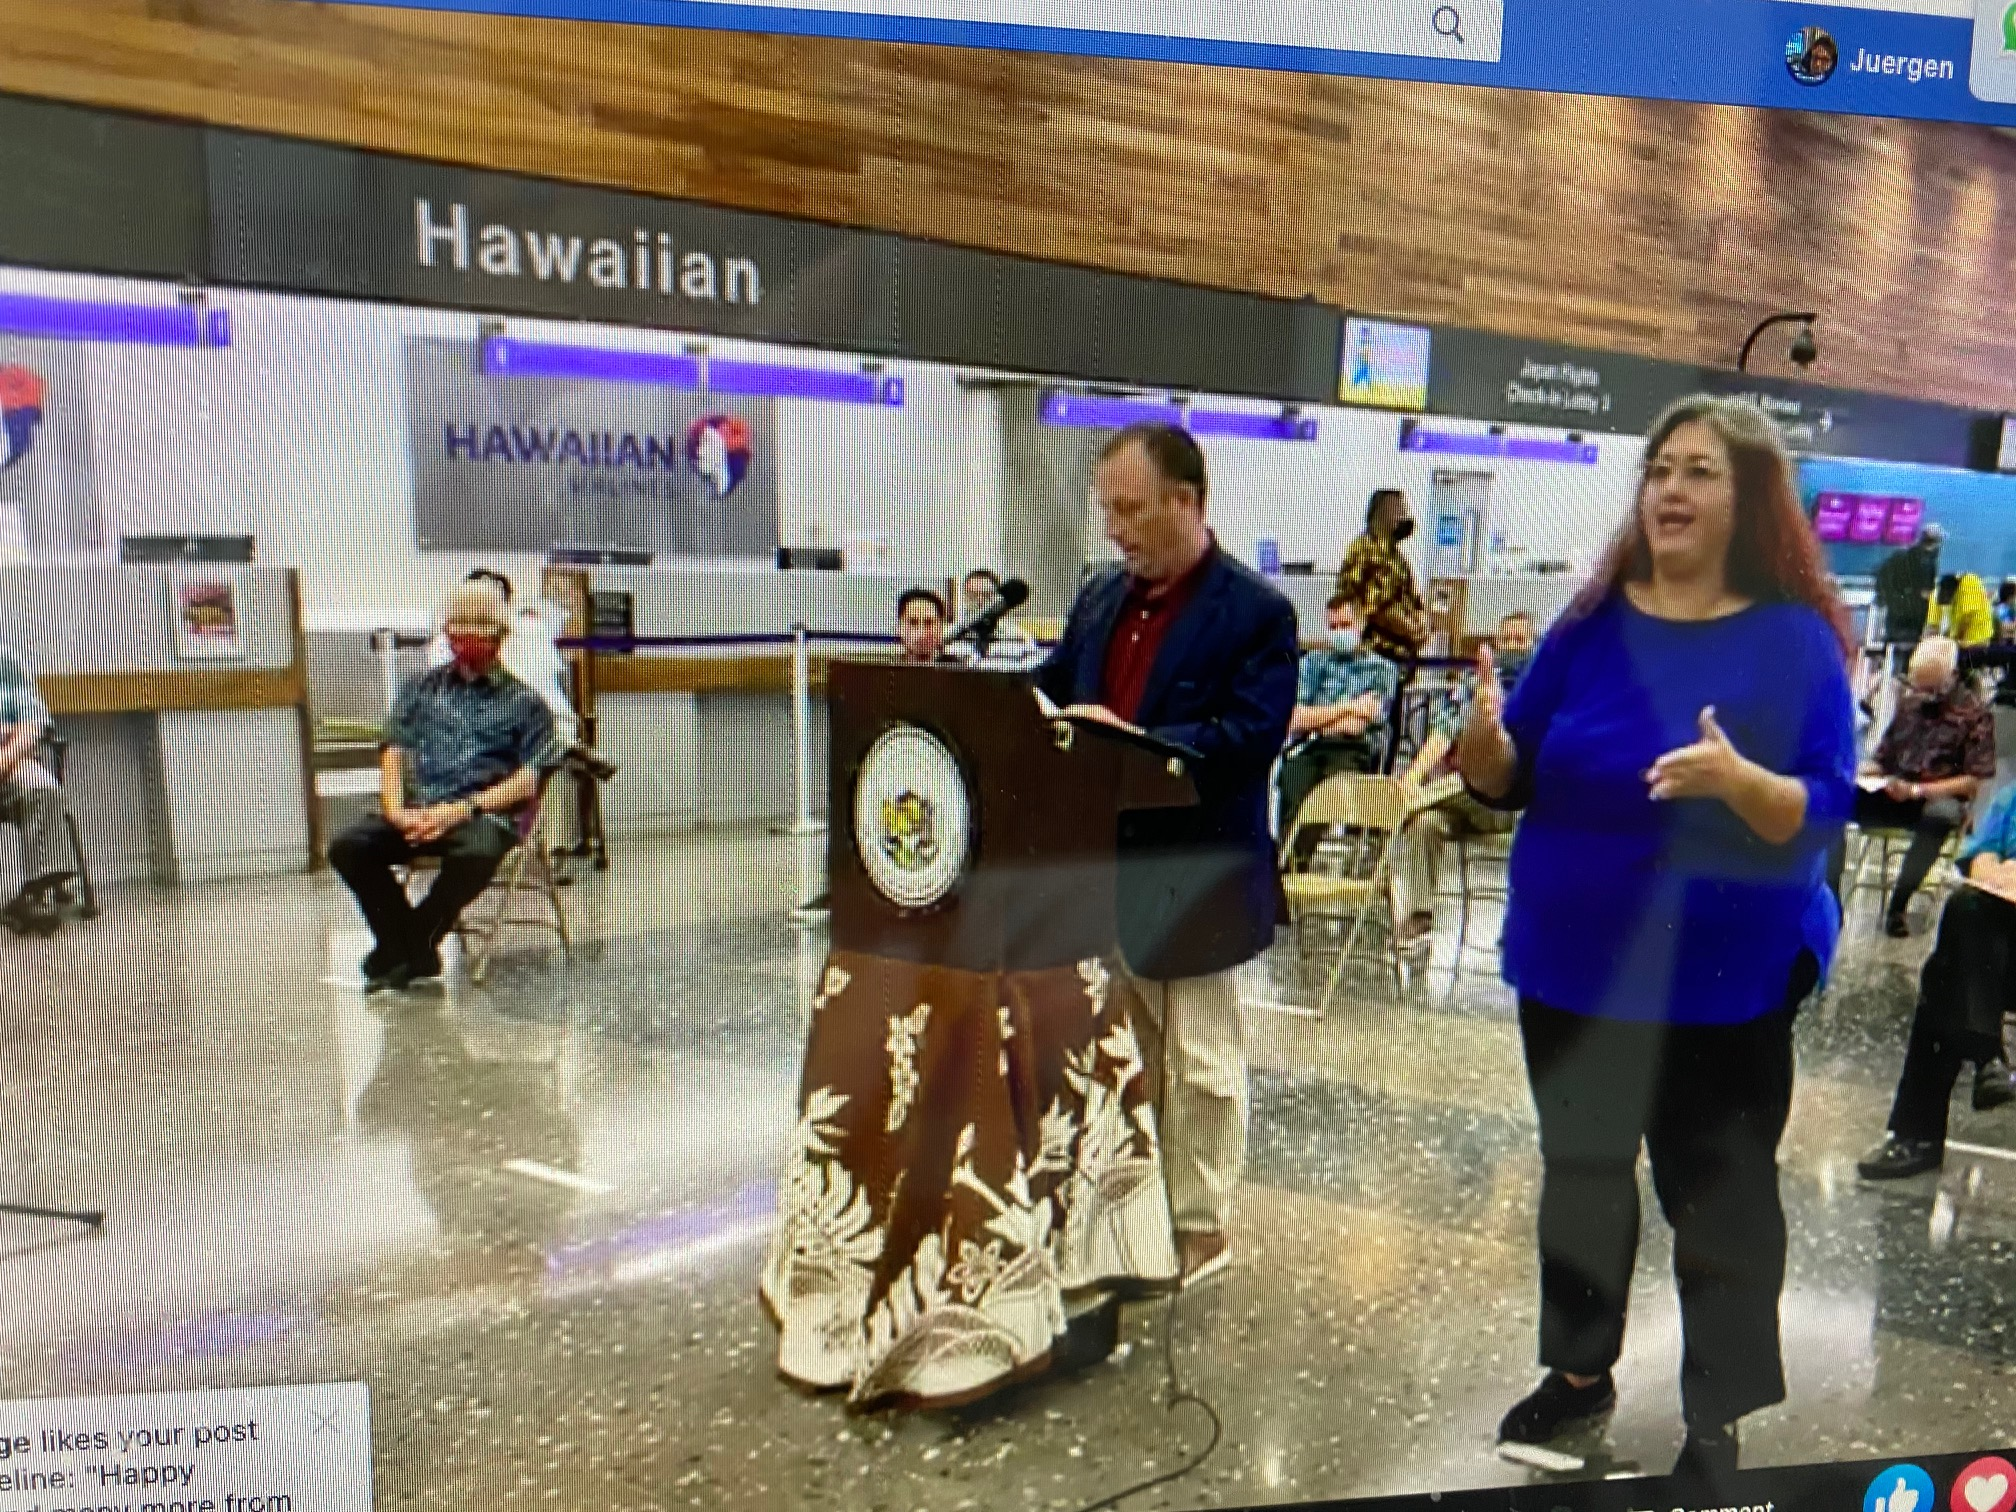 Hawaii Tourism Reopening for Visitors